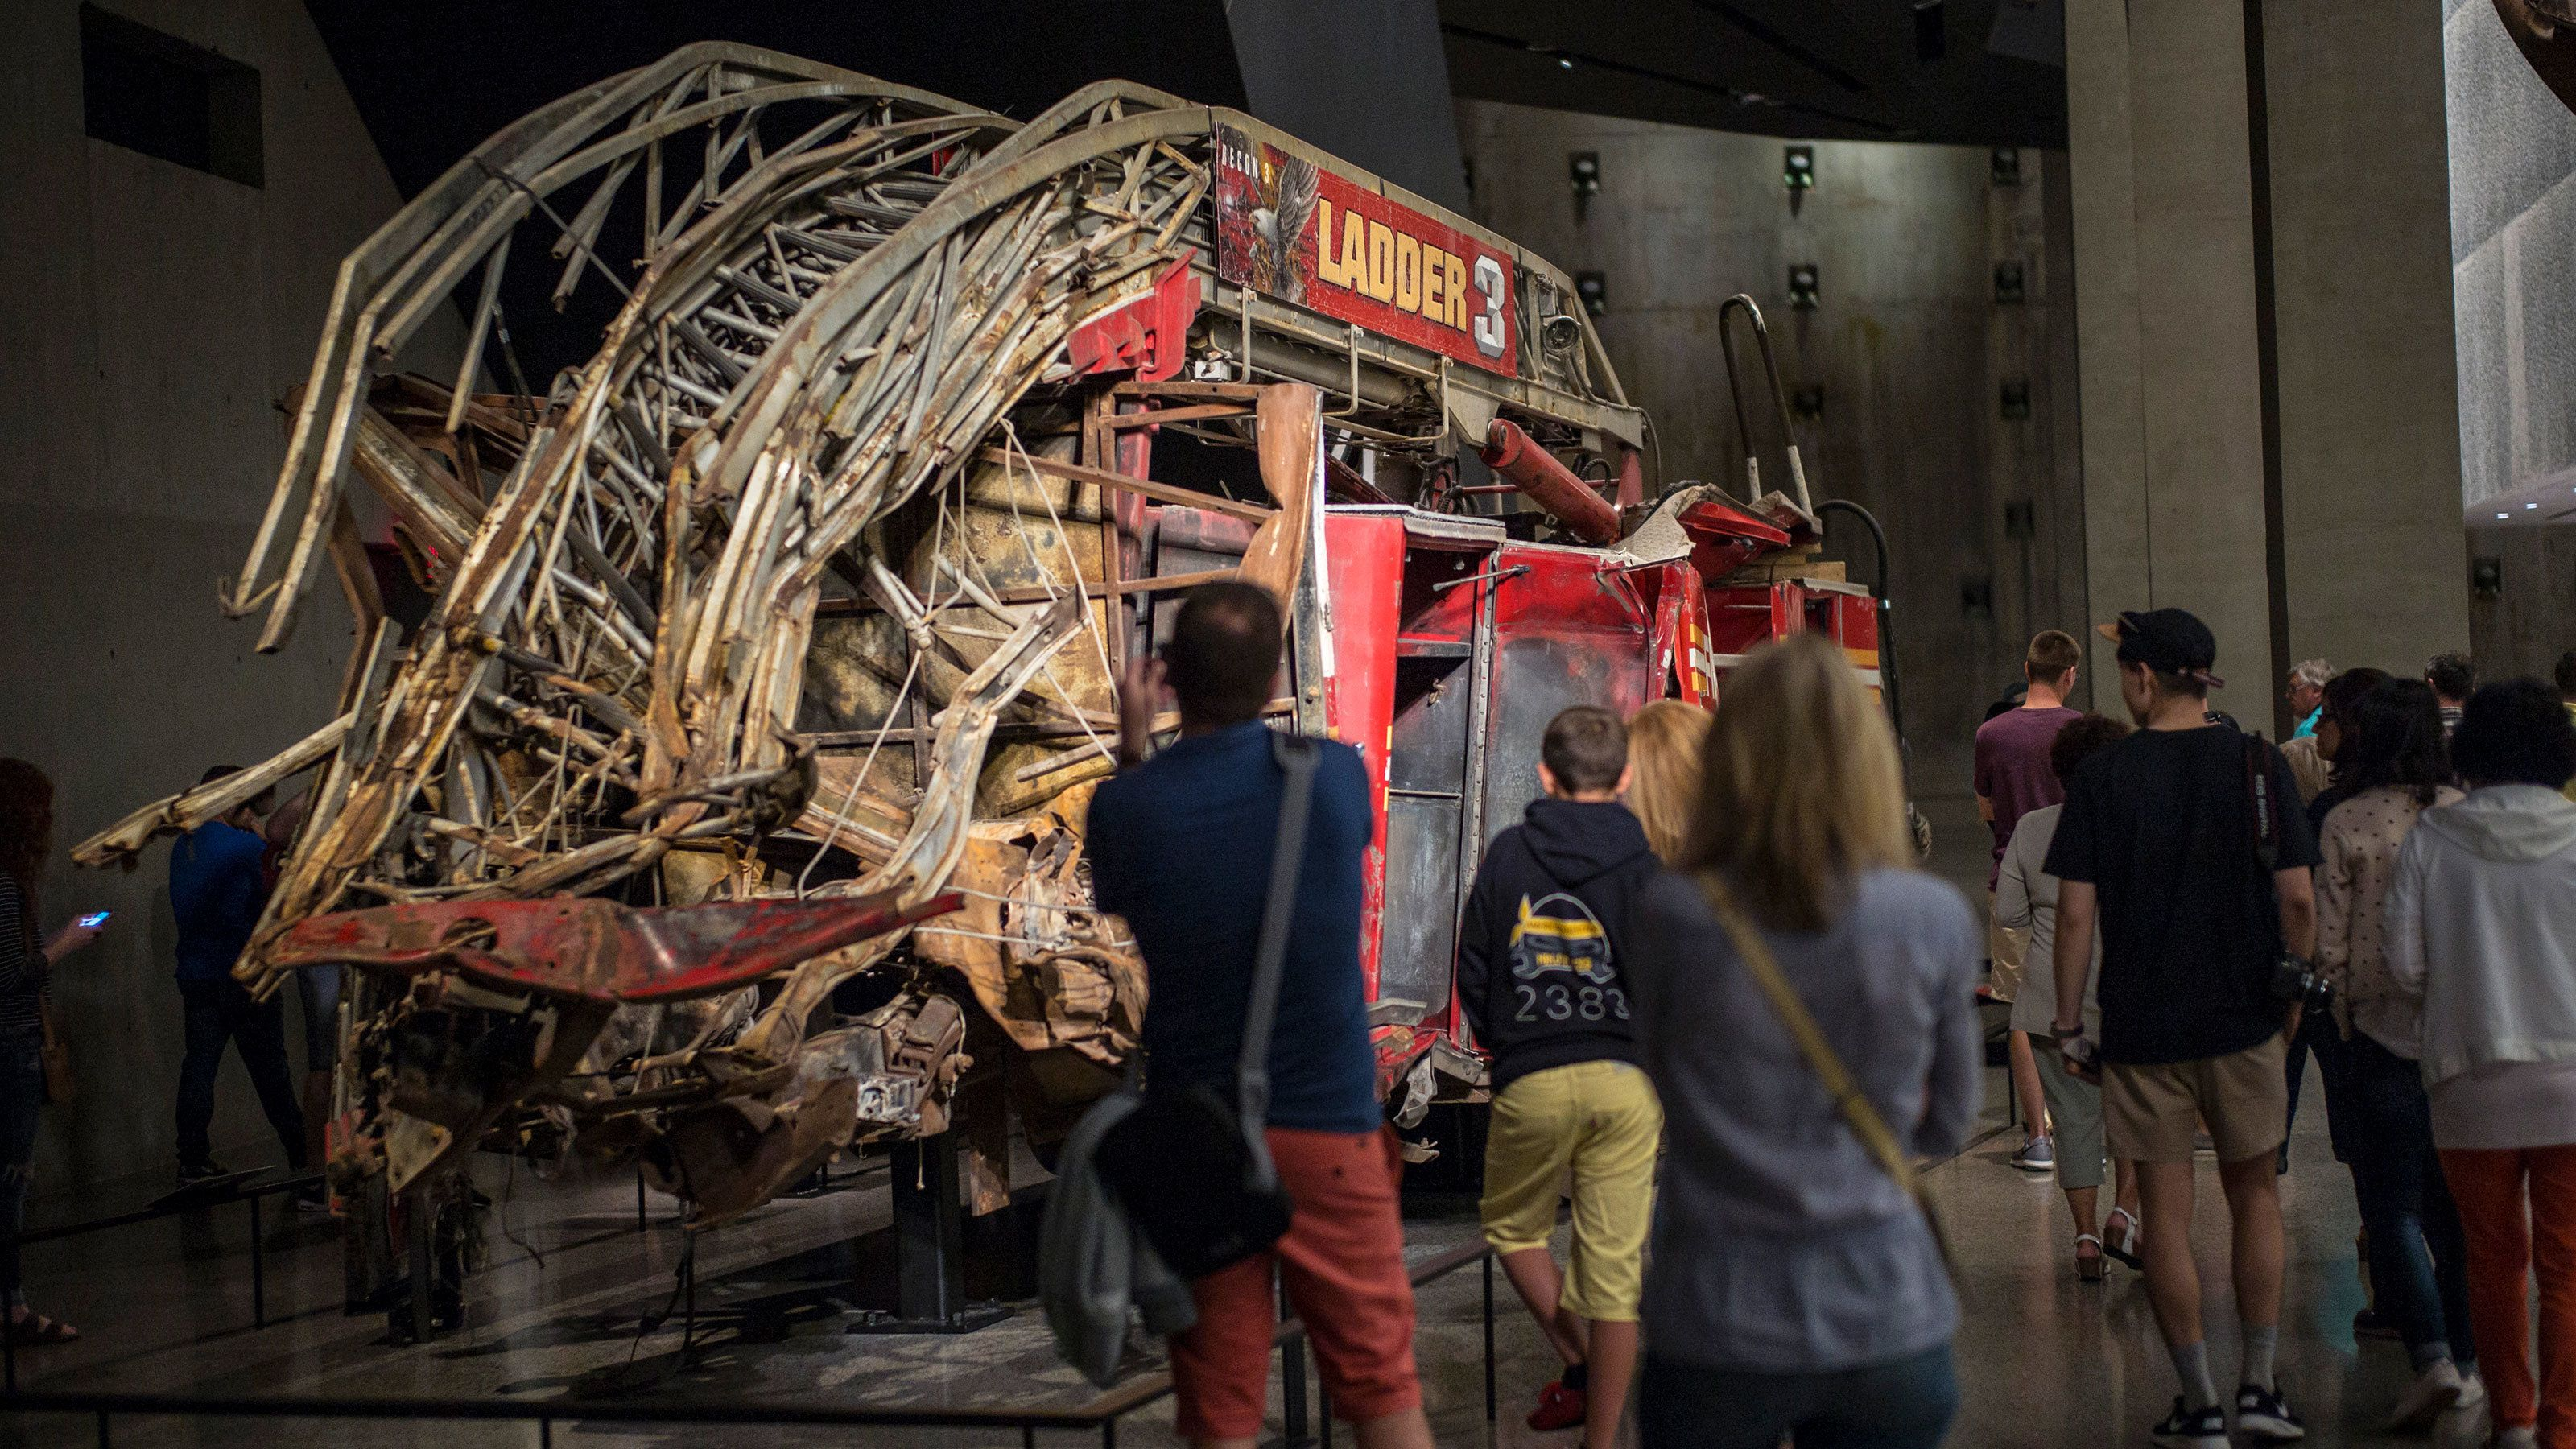 People looking at the remains of fire engine at the National September 11 Memorial Museum in New York